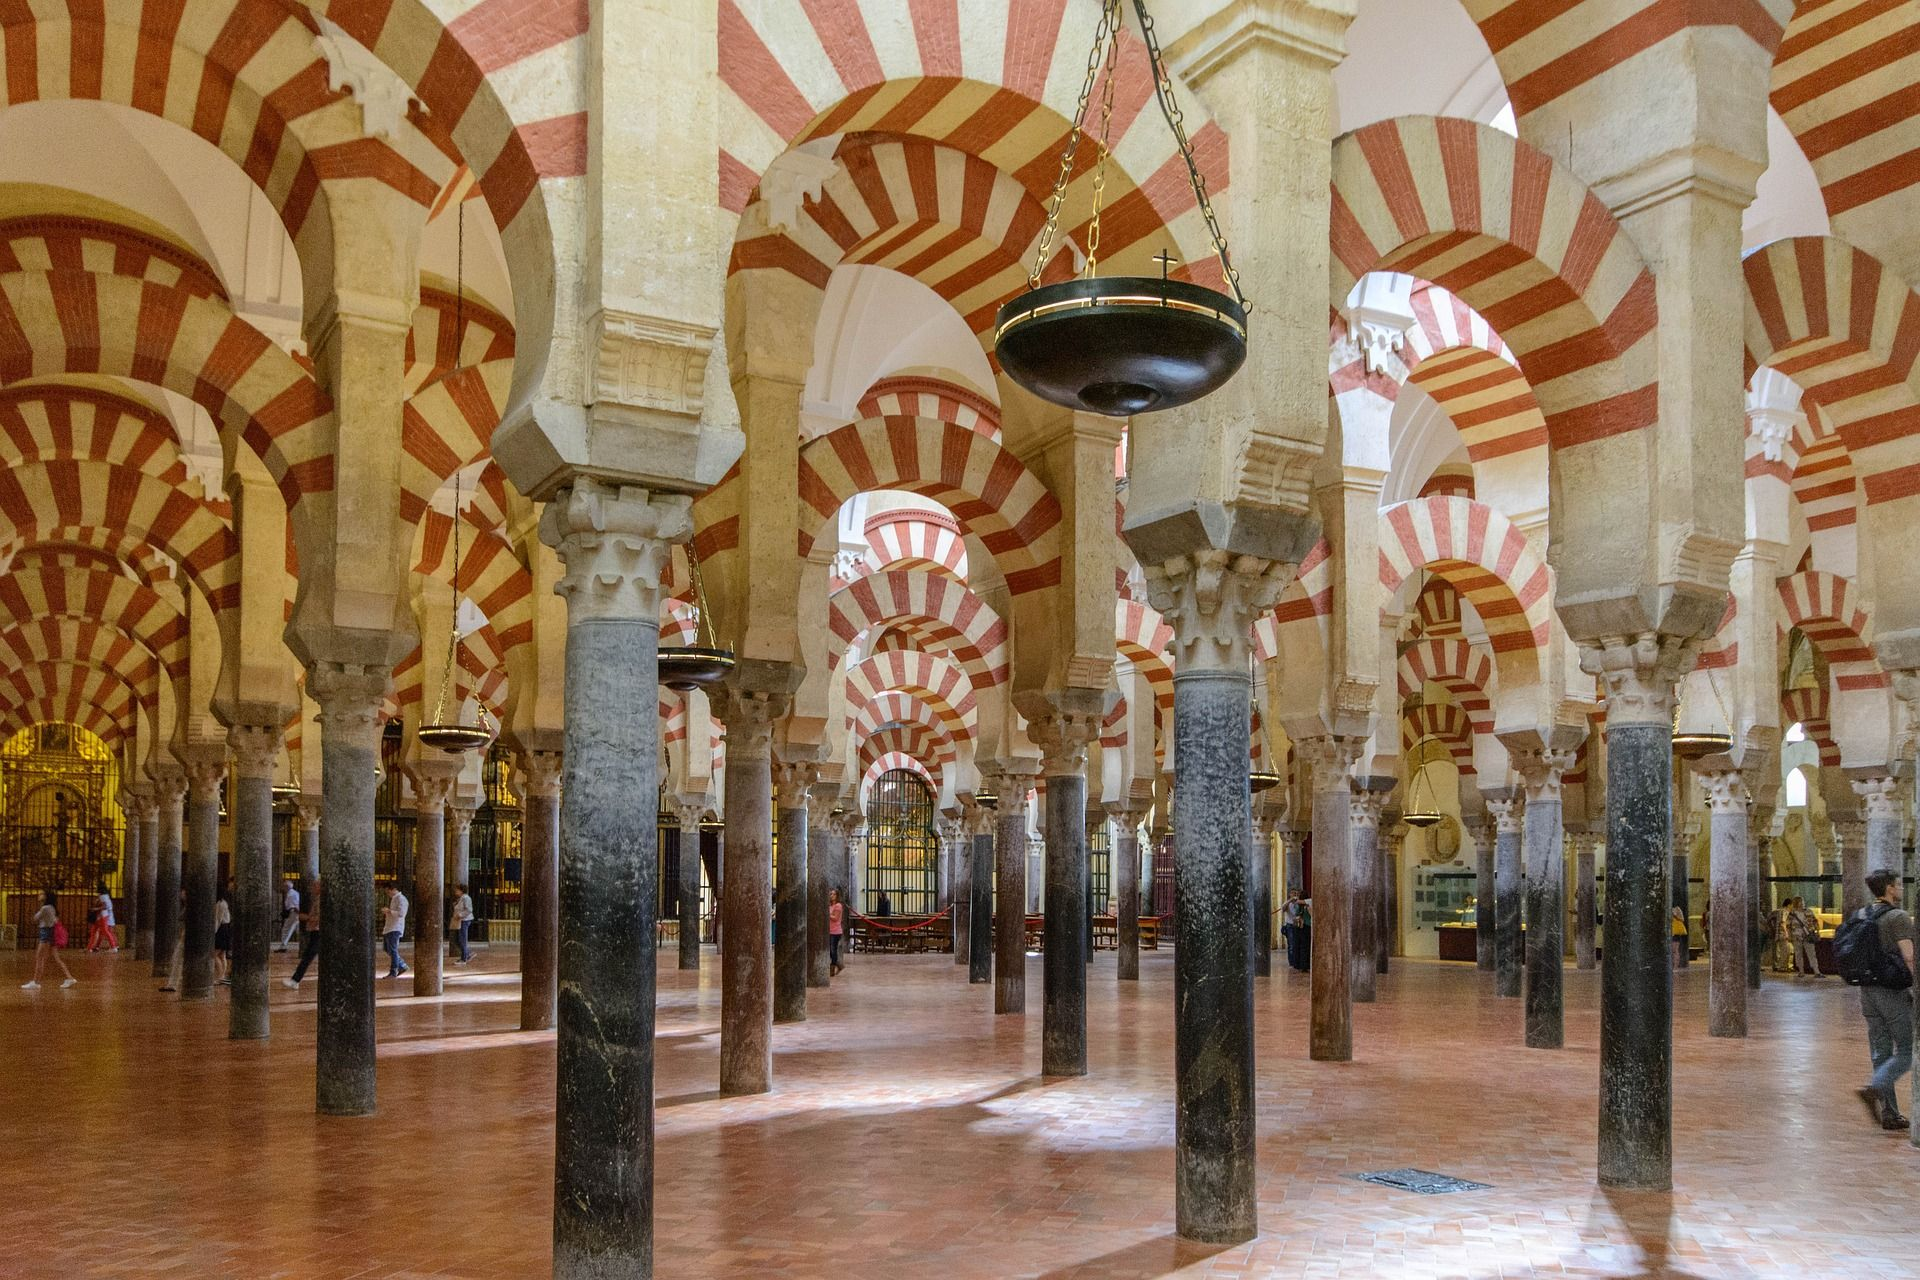 Great Mosque of Cordoba. Image from Pixabay.com